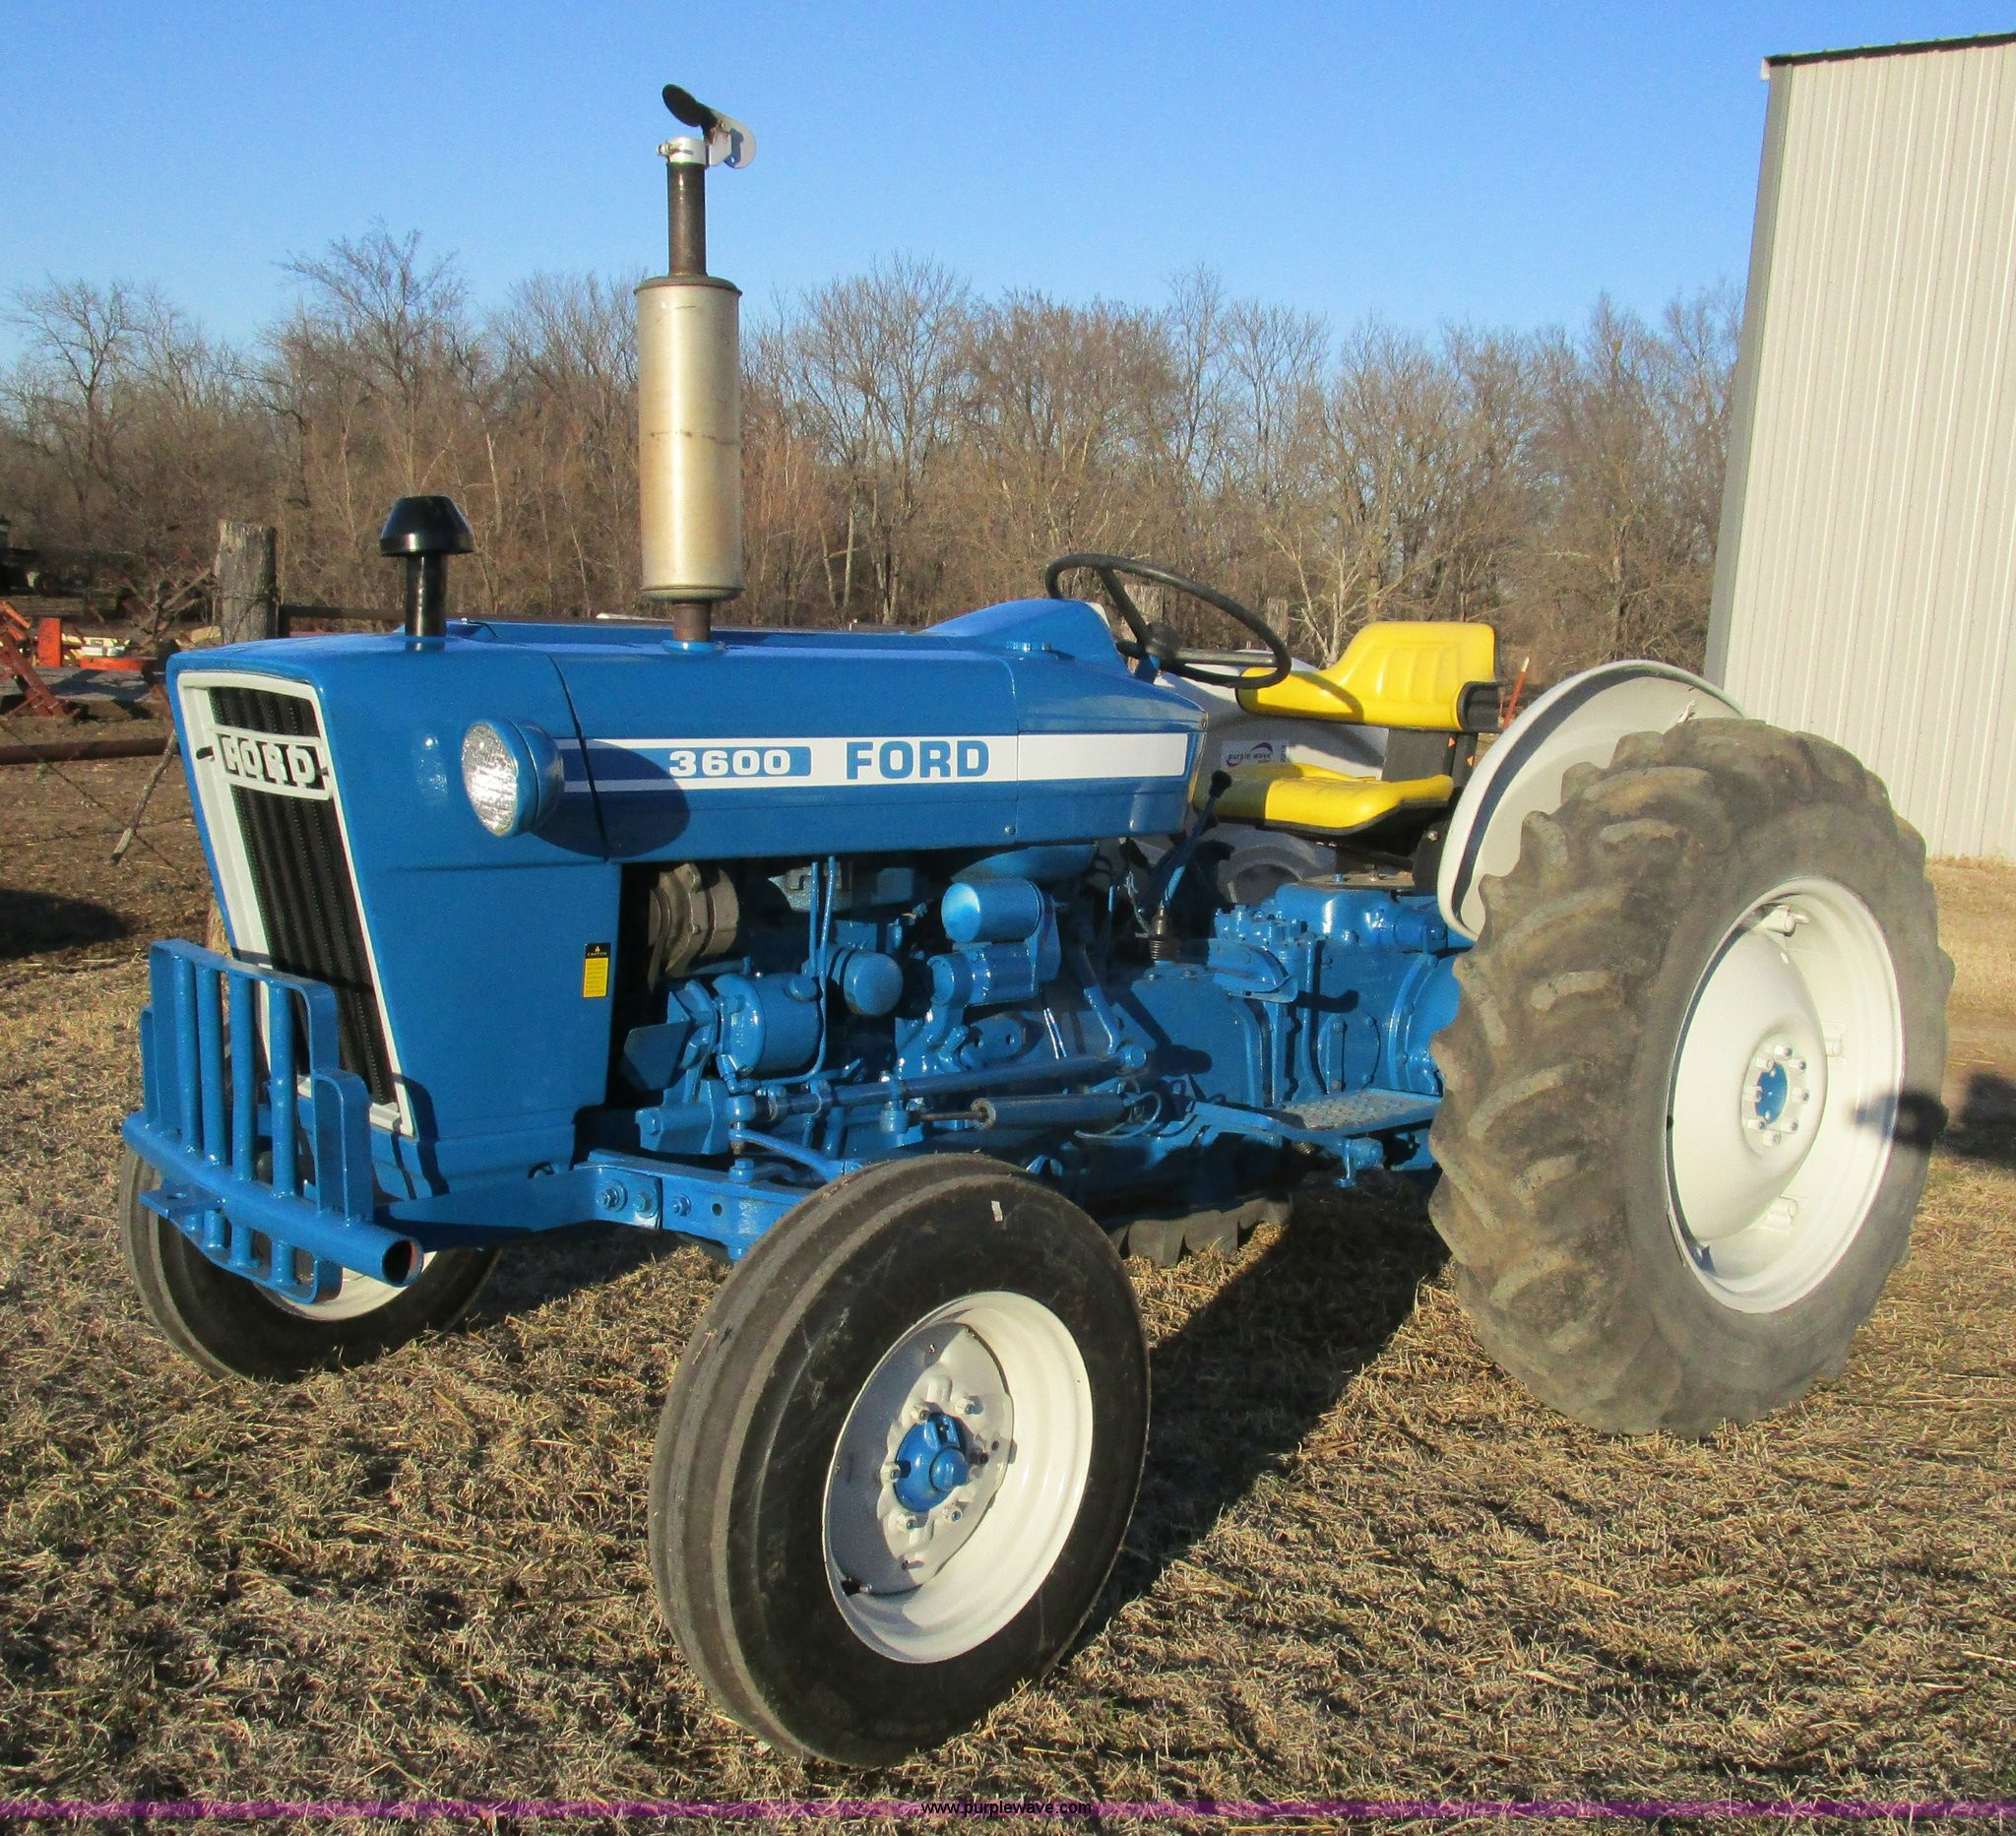 Ford 3600 Tractor Parts Diagram 1976 ford 3600 Tractor Item D2319 Of Ford 3600 Tractor Parts Diagram